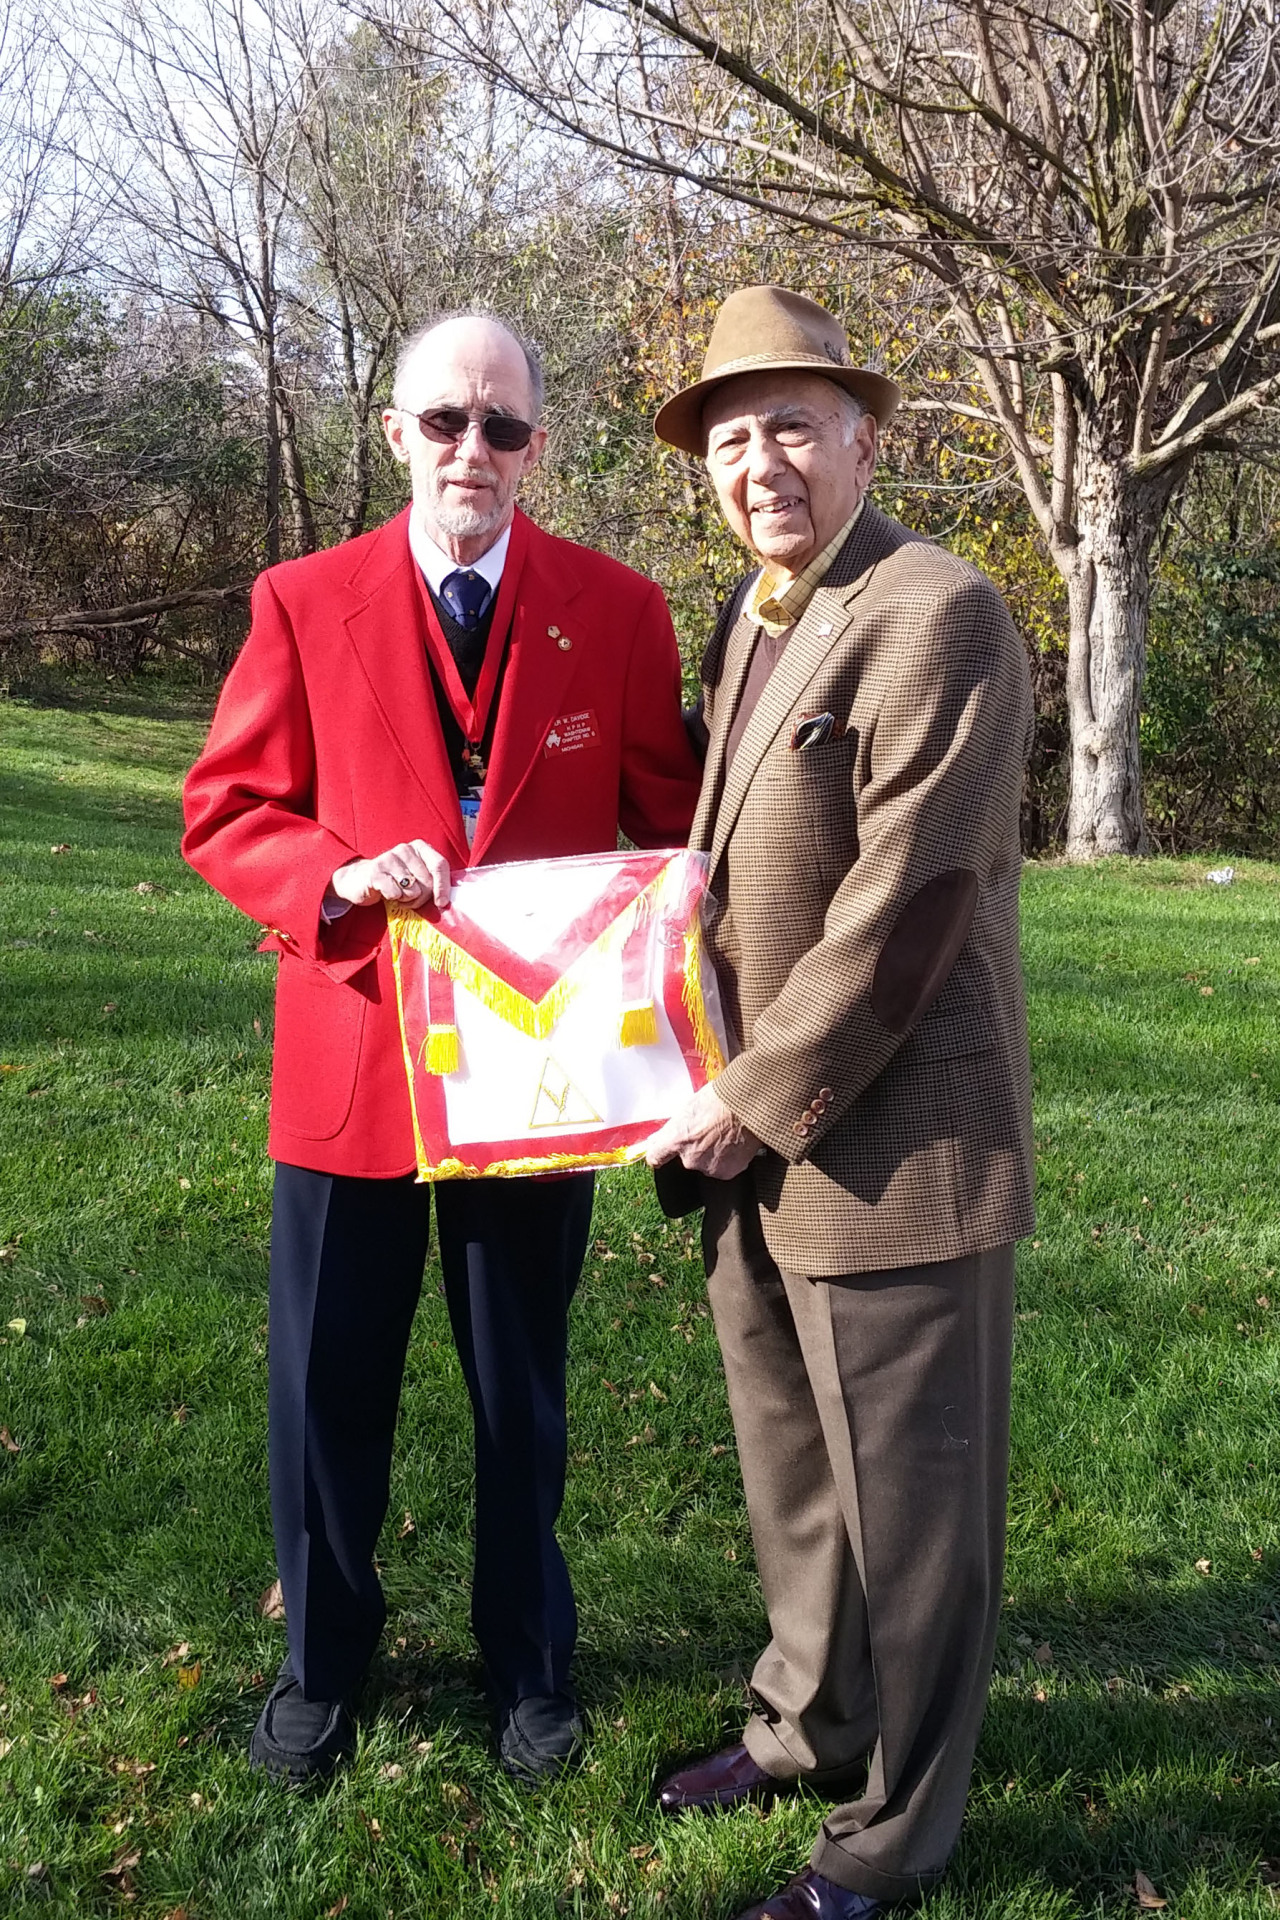 Today, Brother Dan Kachadourian of  Ann Arbor-Fraternity Lodge  presented Washtenaw Chapter with a replacement Secretary's apron in memory of PHP and Chapter Secretary Seymour D. Greenstone. The original apron was damaged beyond repair and Bro. Kachadourian, a long time friend of Excellent Companion Greenstone very graciously offered to replace it.